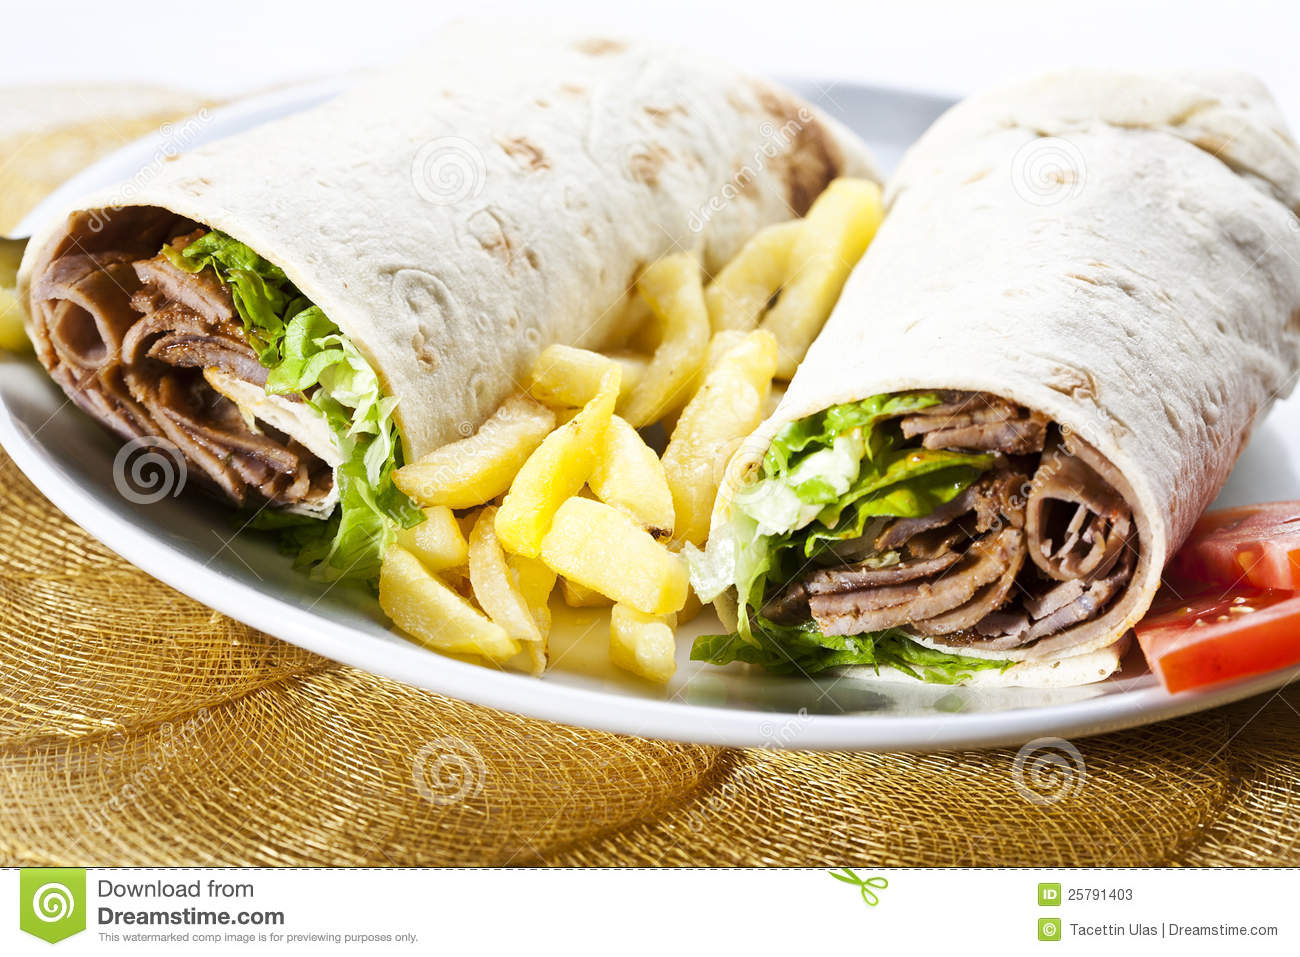 Kebab wrap, Turkish traditional food with french fries and vegetable.